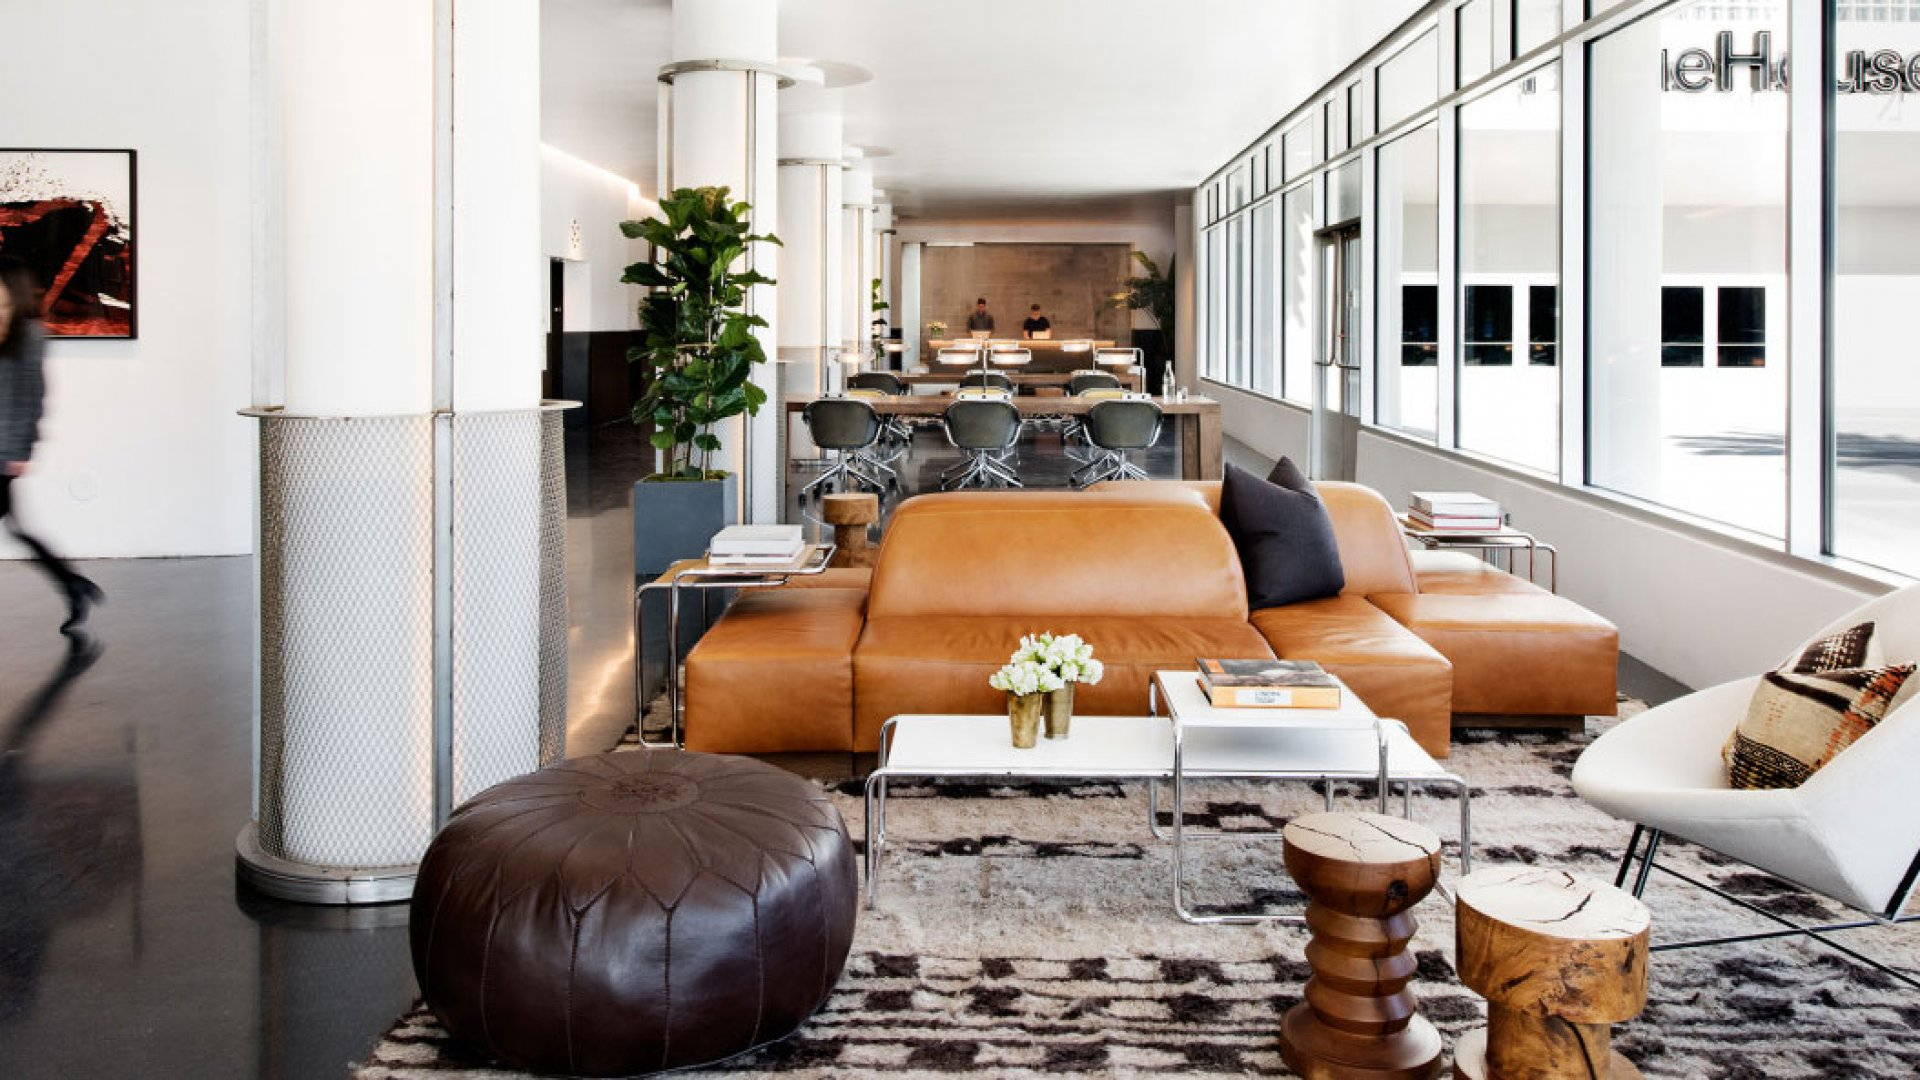 NeueHouse coworking space, Los Angeles.